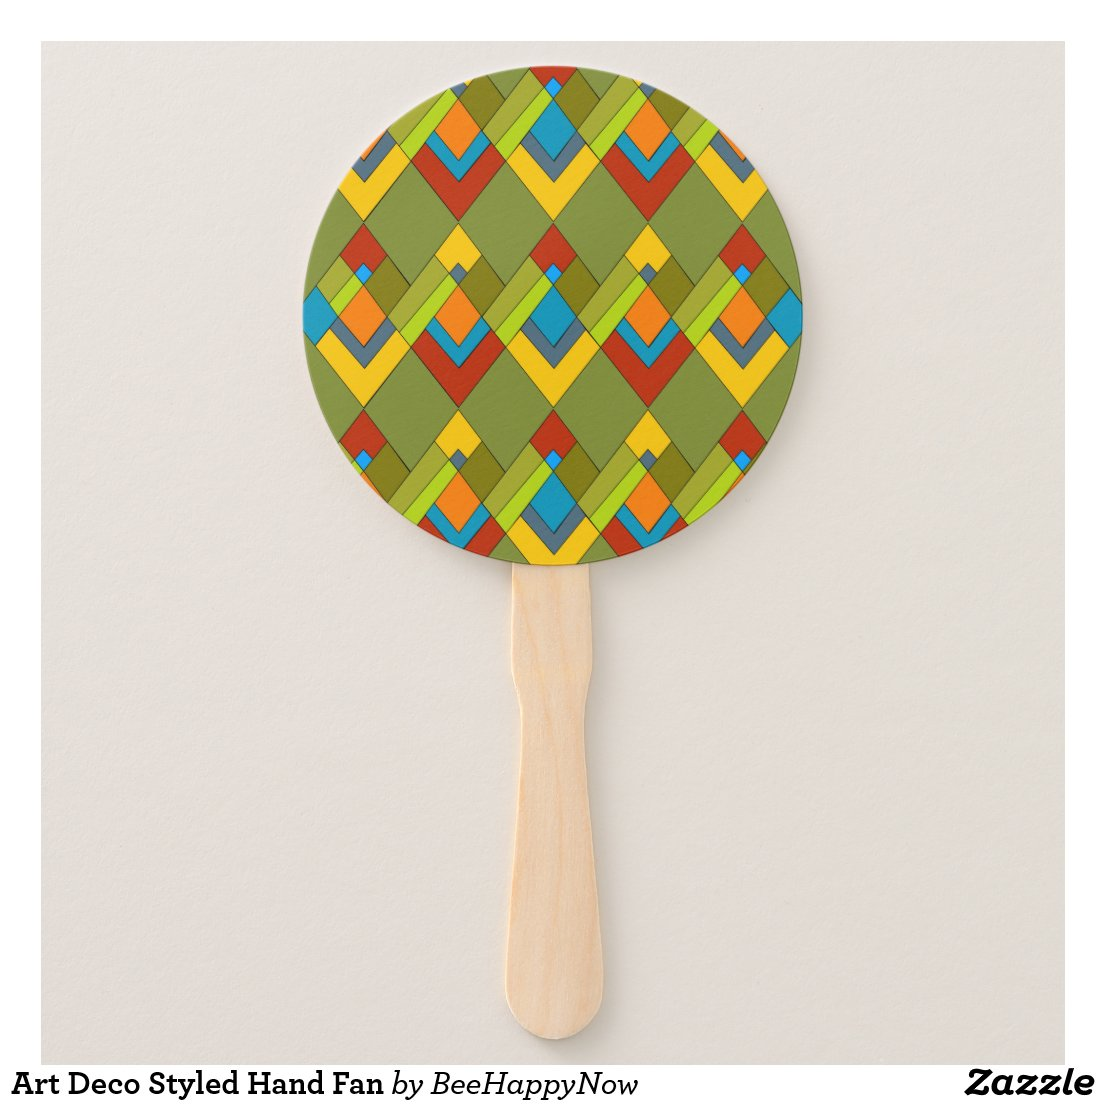 Art Deco Styled Hand Fan